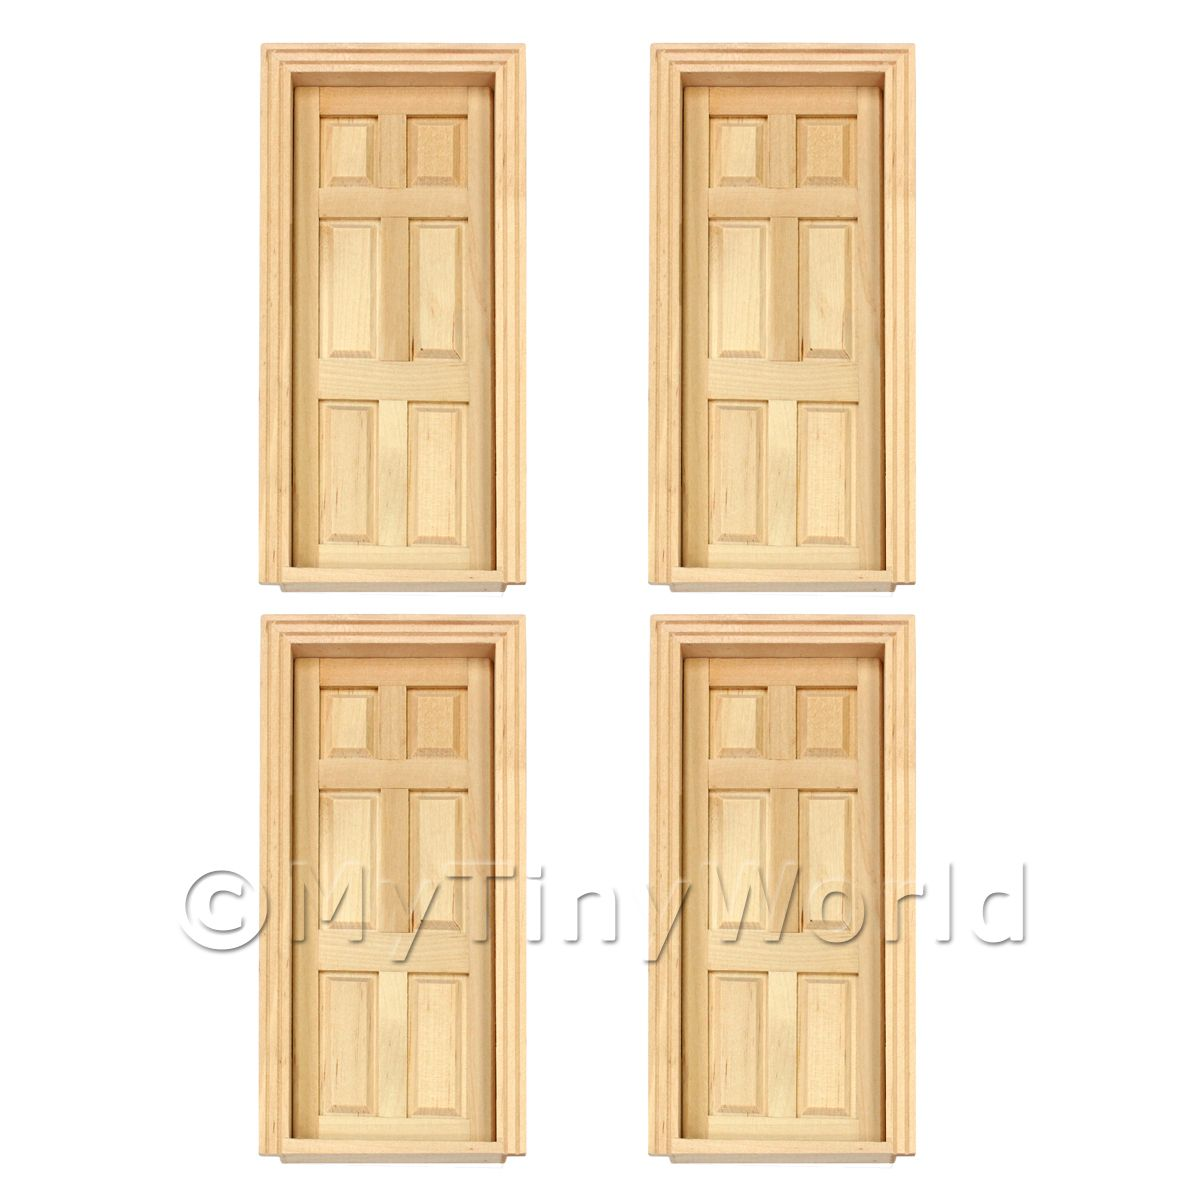 4 x Dolls House Miniature Internal 6 Panel Doors